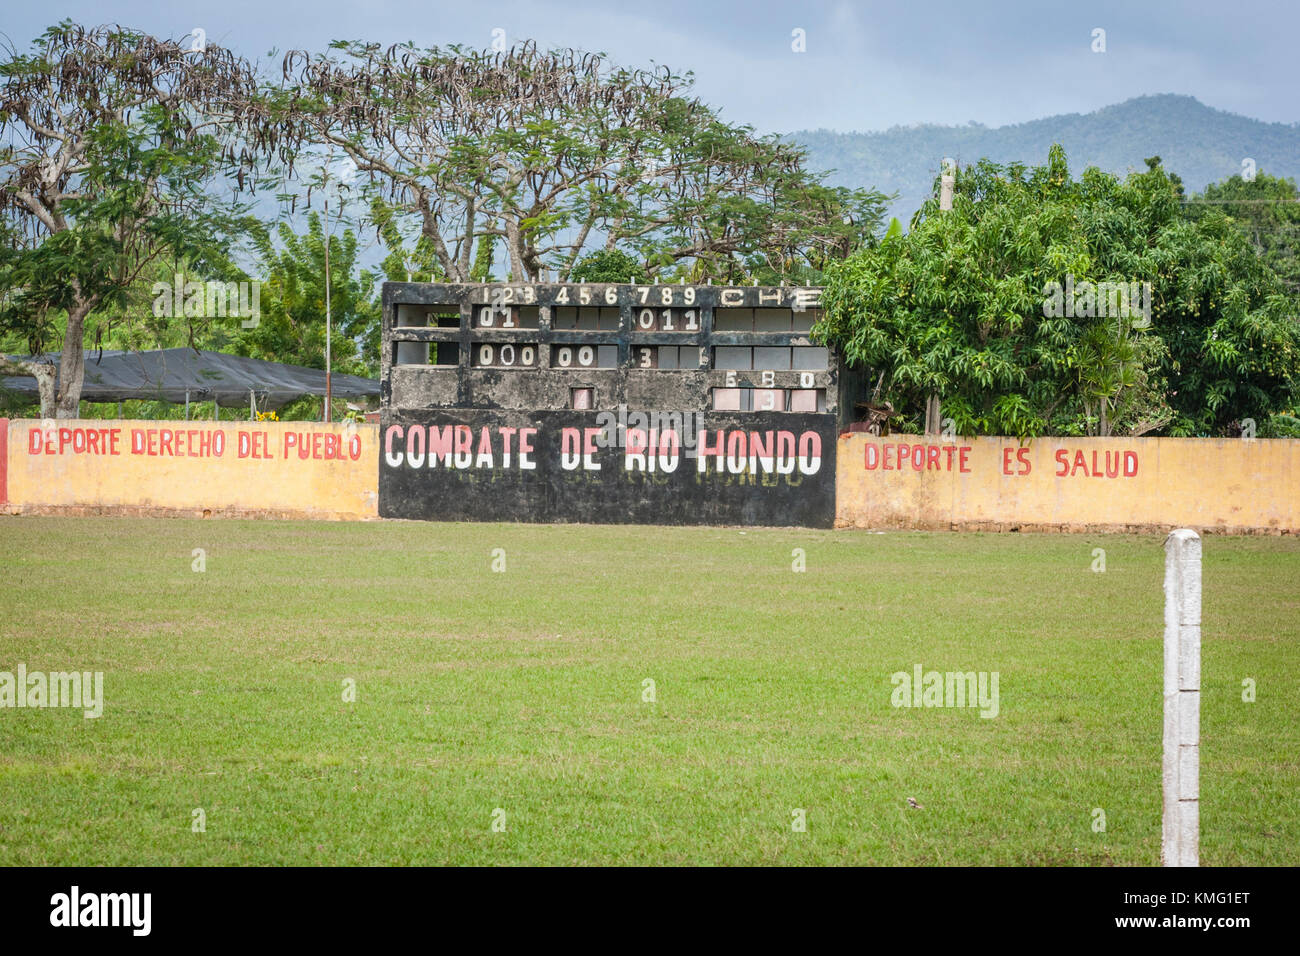 Baseball ground in Cuban town - Stock Image